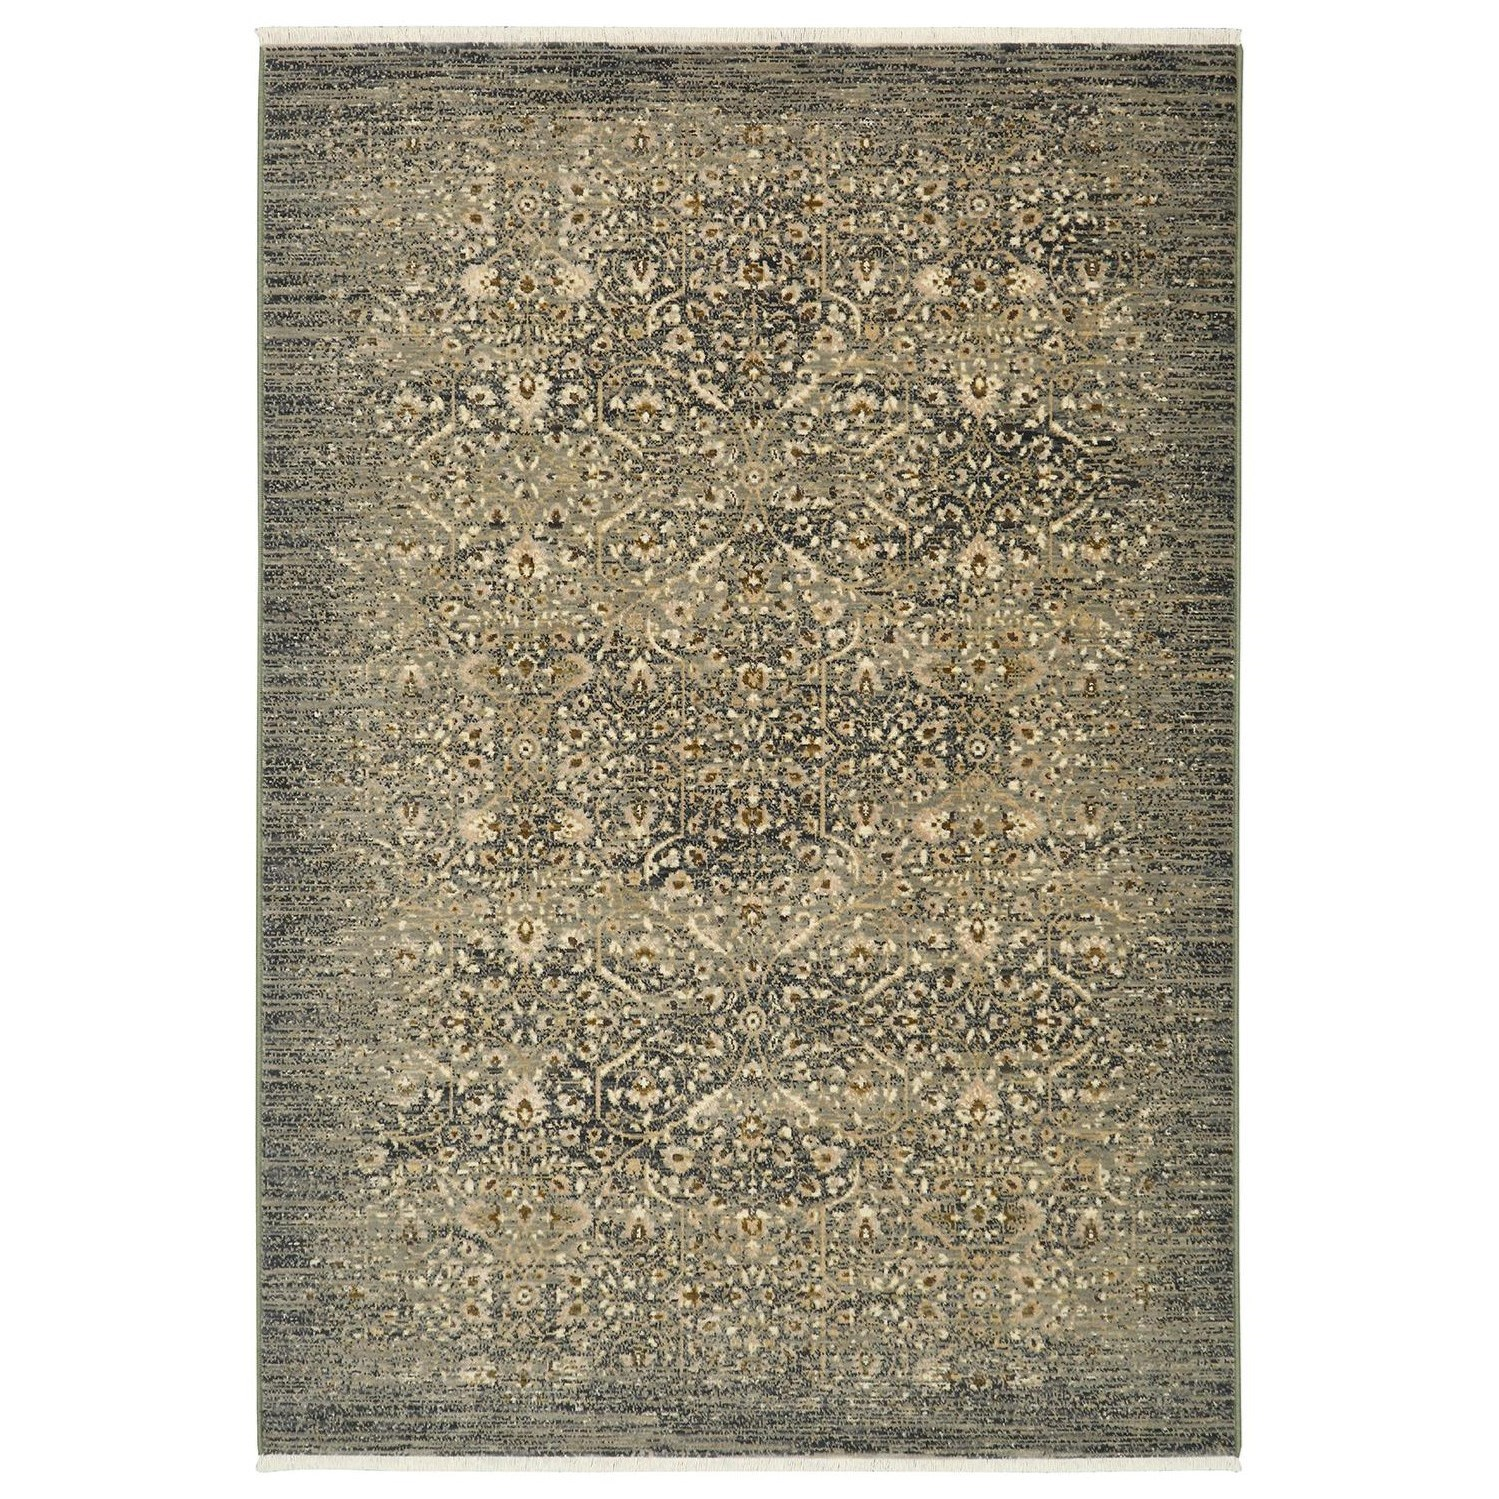 Titanium 3'6x5'6 Andeols Slate Rug by Karastan Rugs at Darvin Furniture